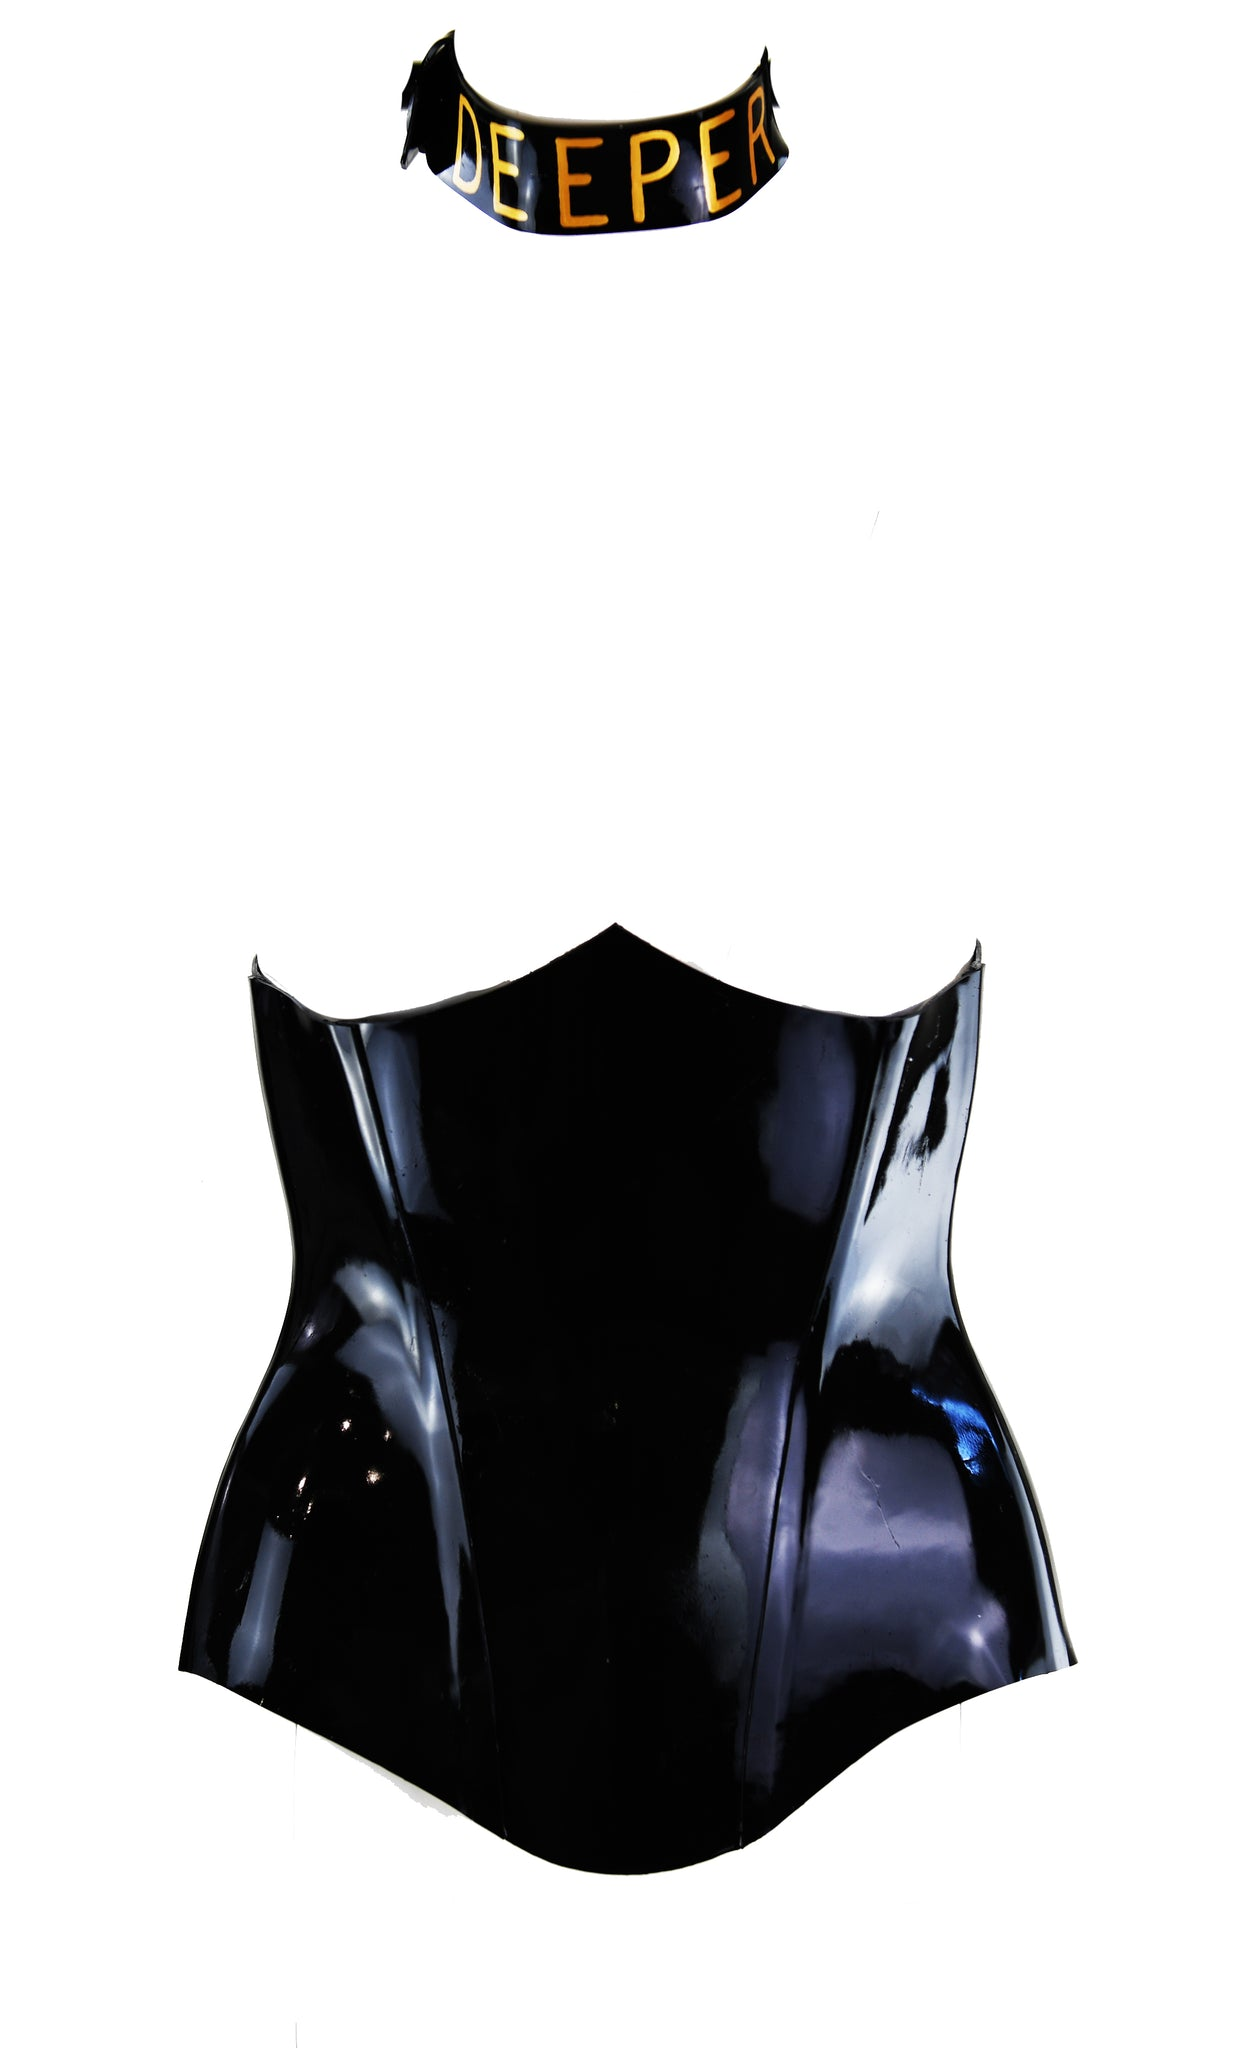 Gold Deeper Heavy Rubber Latex Collar & Black Heavy Rubber Latex Underbust Vamp Corset